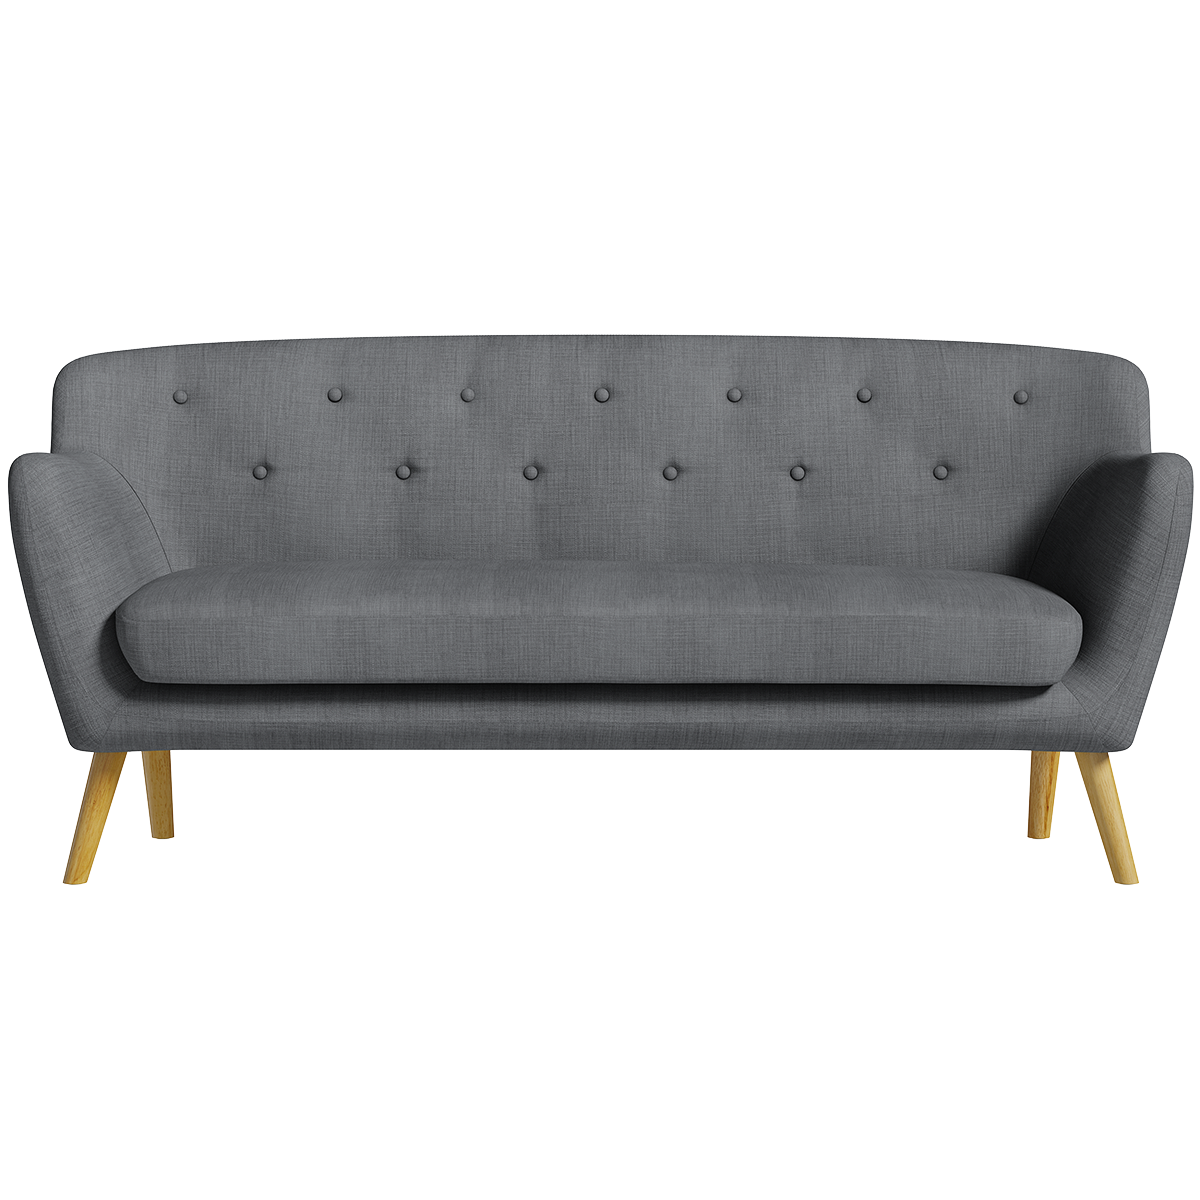 Holborn Large Sofa - Charcoal with Light-Coloured Legs